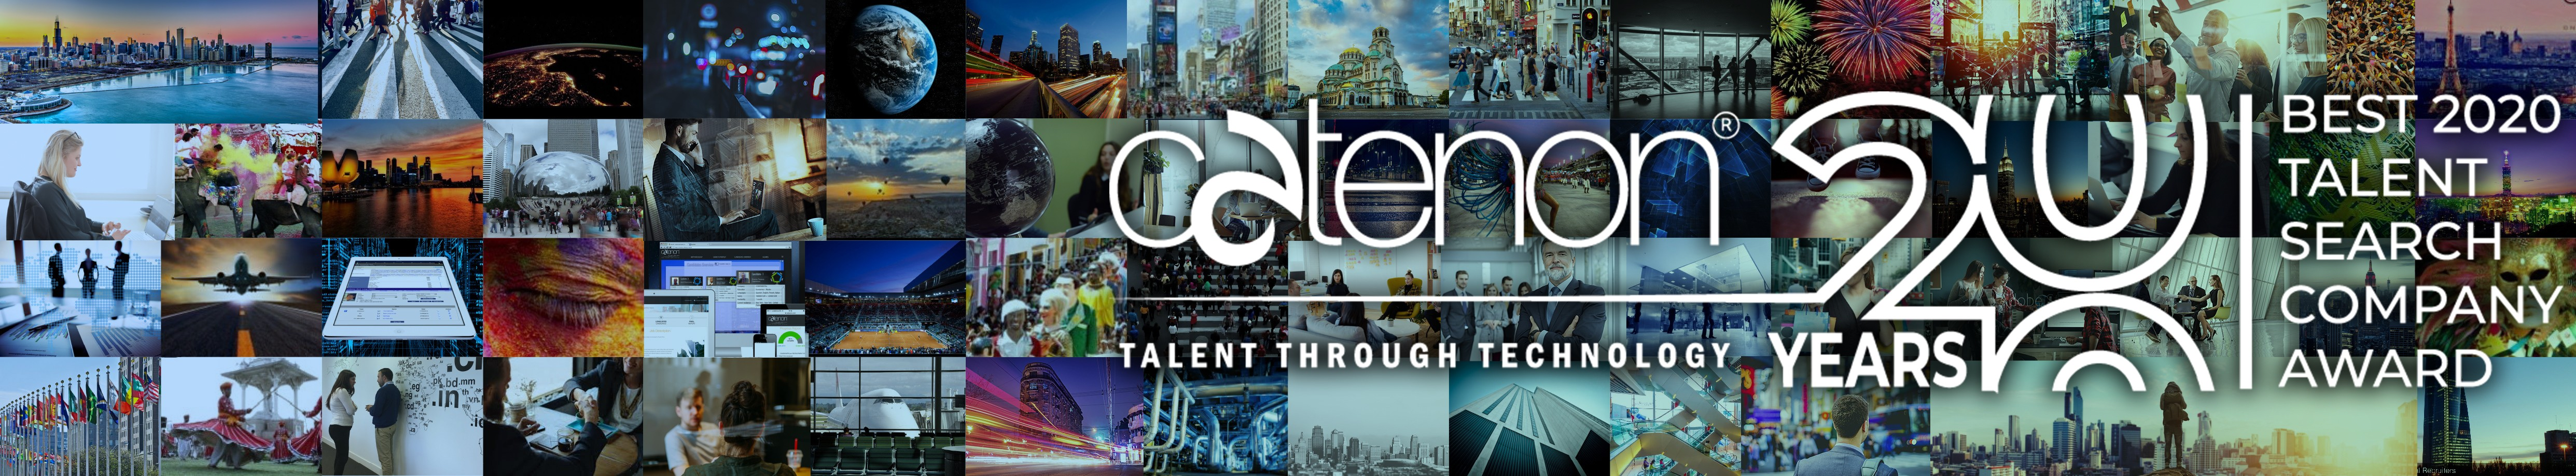 Talent Hackers Jobspot header image